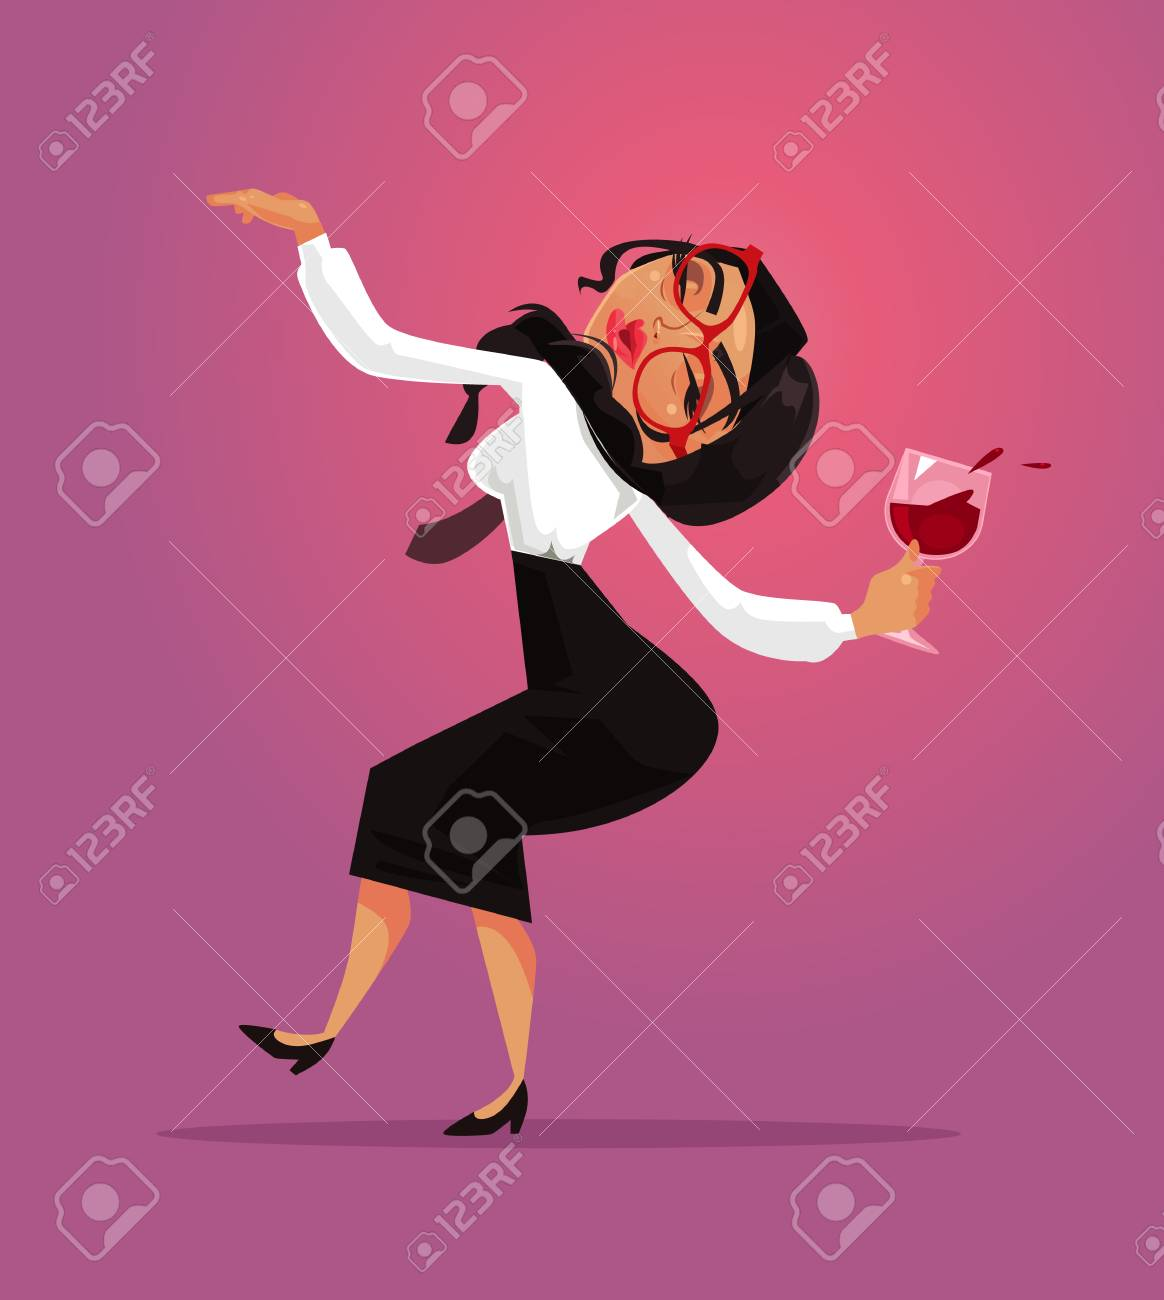 Image result for FREE CARTOON IMAGES OF LADIES HAVING A DRINK